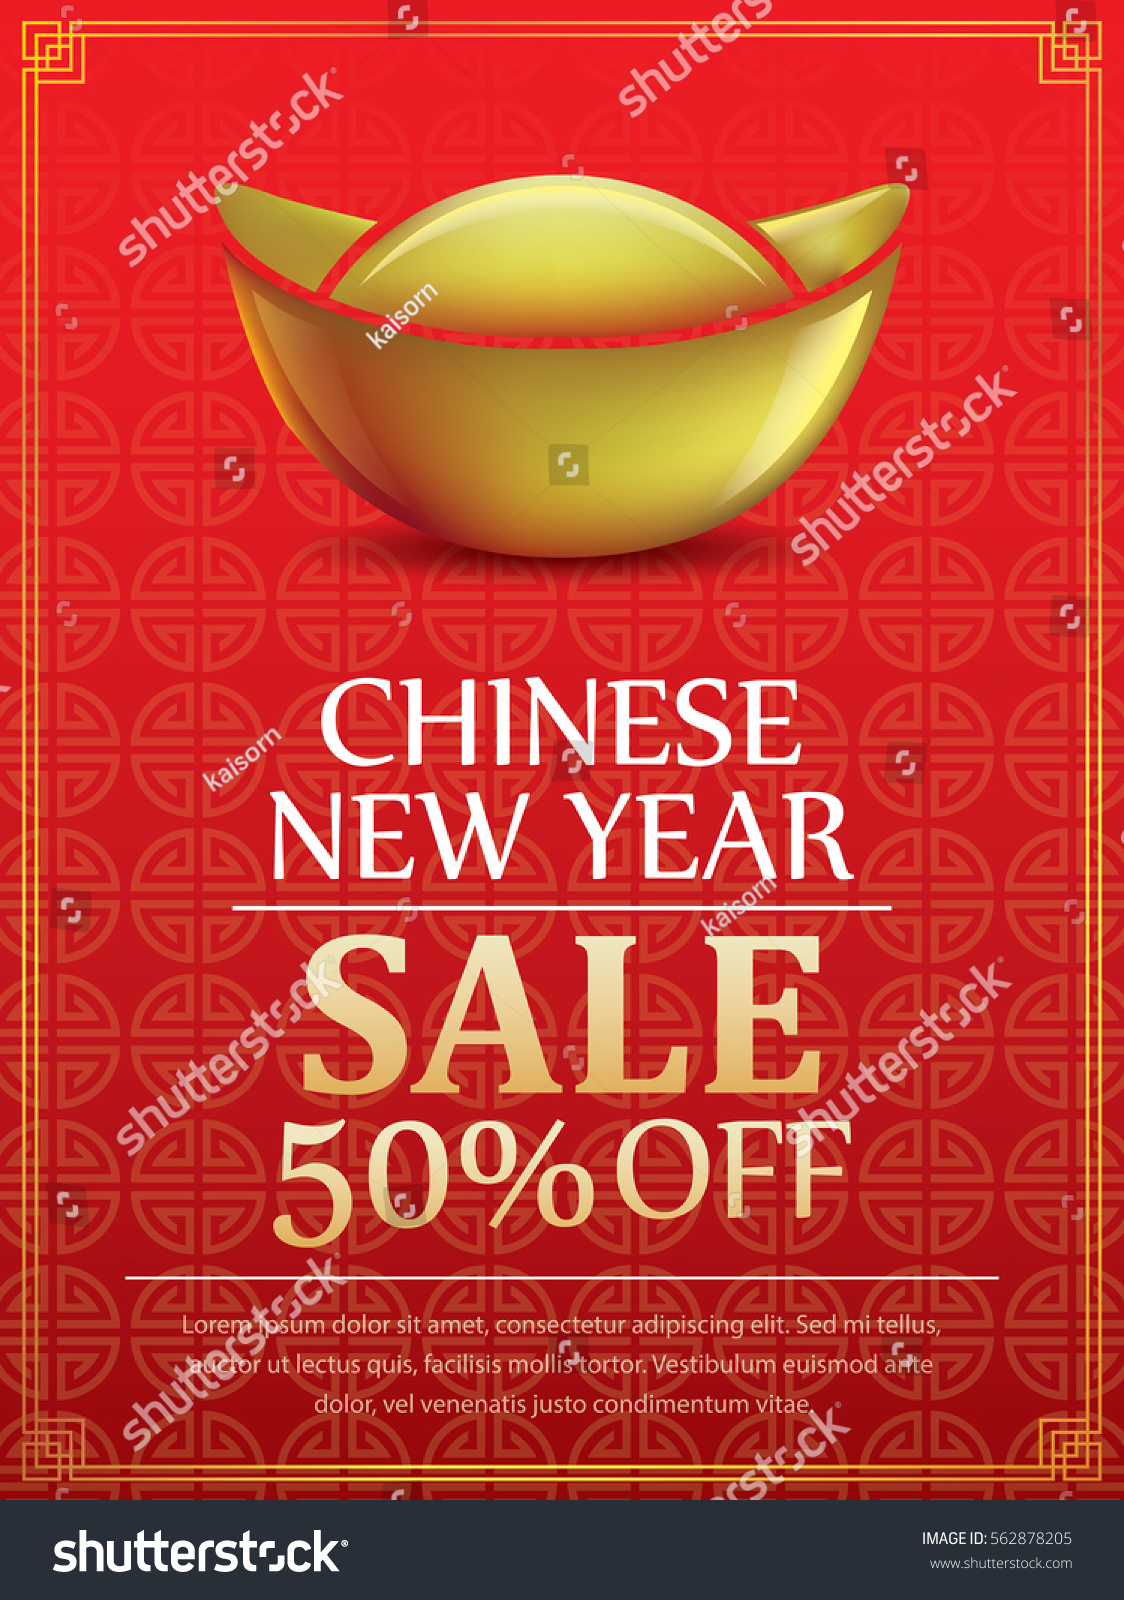 chinese new year sale voucher design stock vector royalty free 562878205 https www shutterstock com image vector chinese new year sale voucher design 562878205